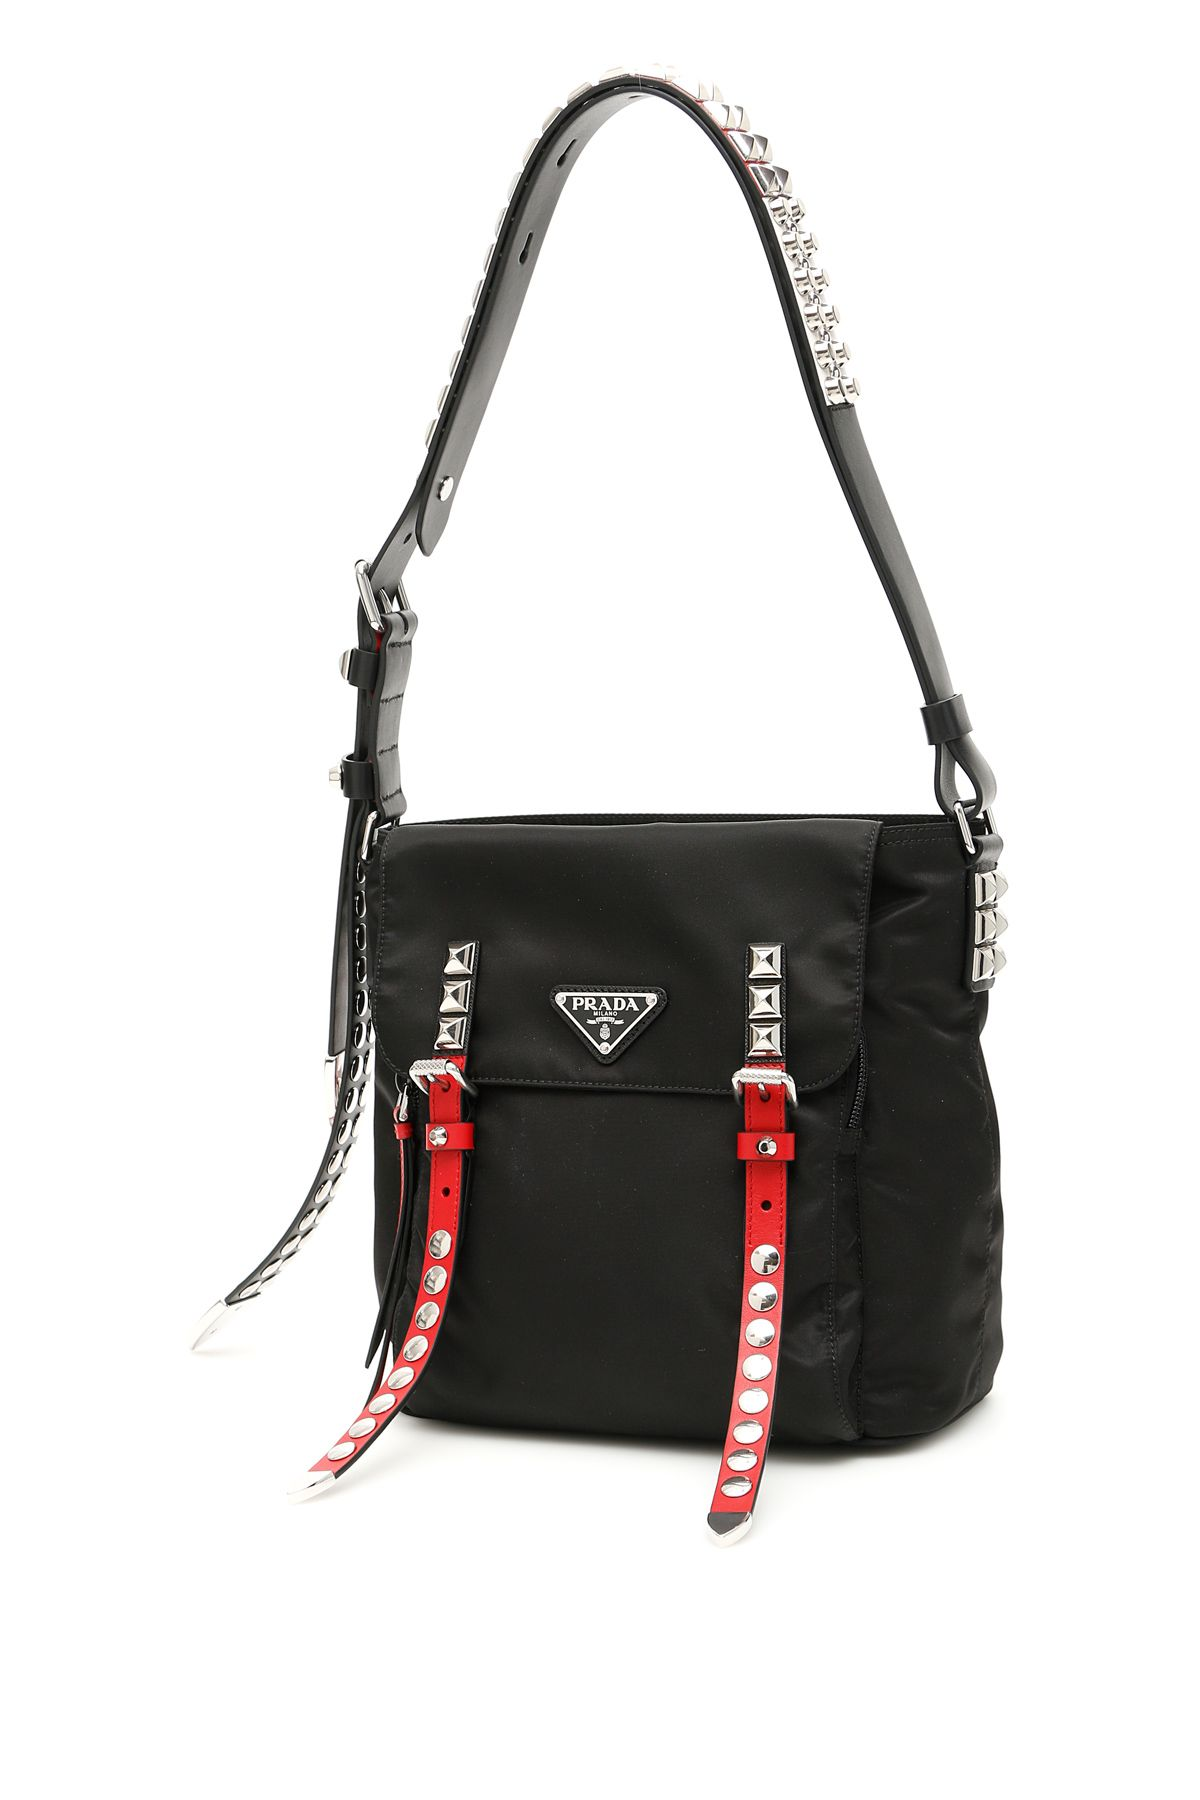 5b1ed45a553e Prada Prada Nylon Bucket Bag With Studs - NERO FUOCO